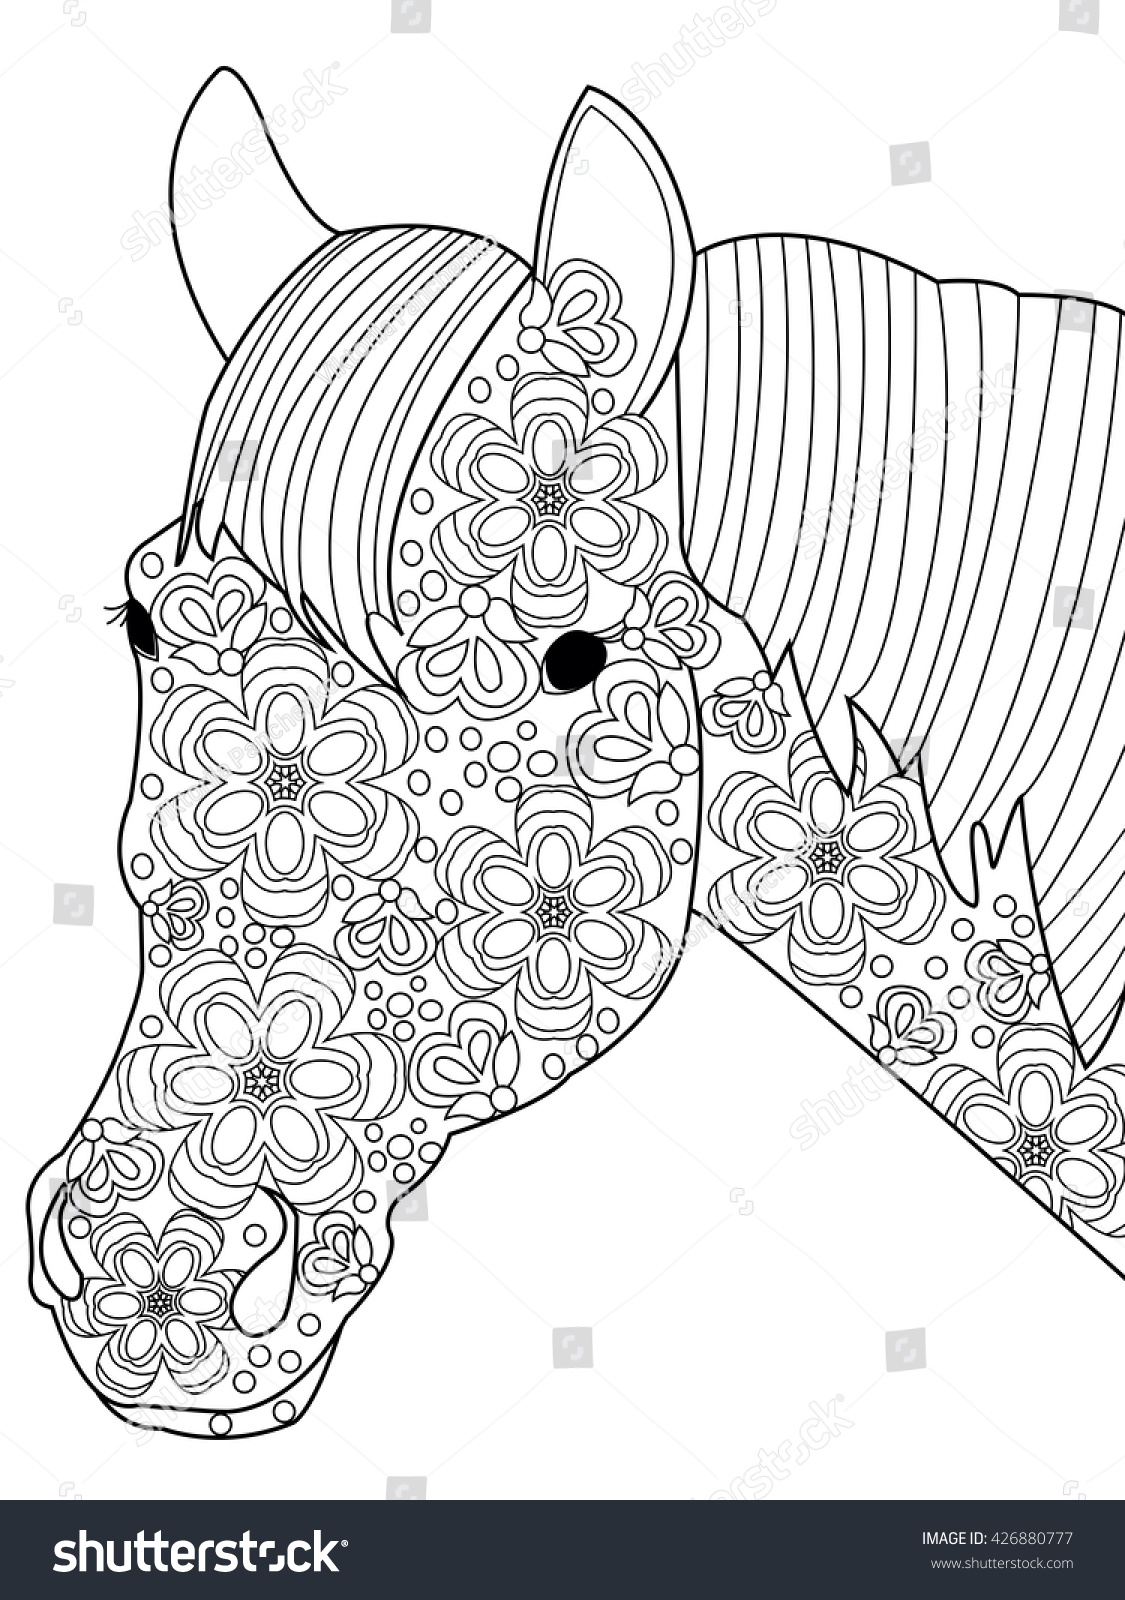 Horse Head Coloring Pages For Adults